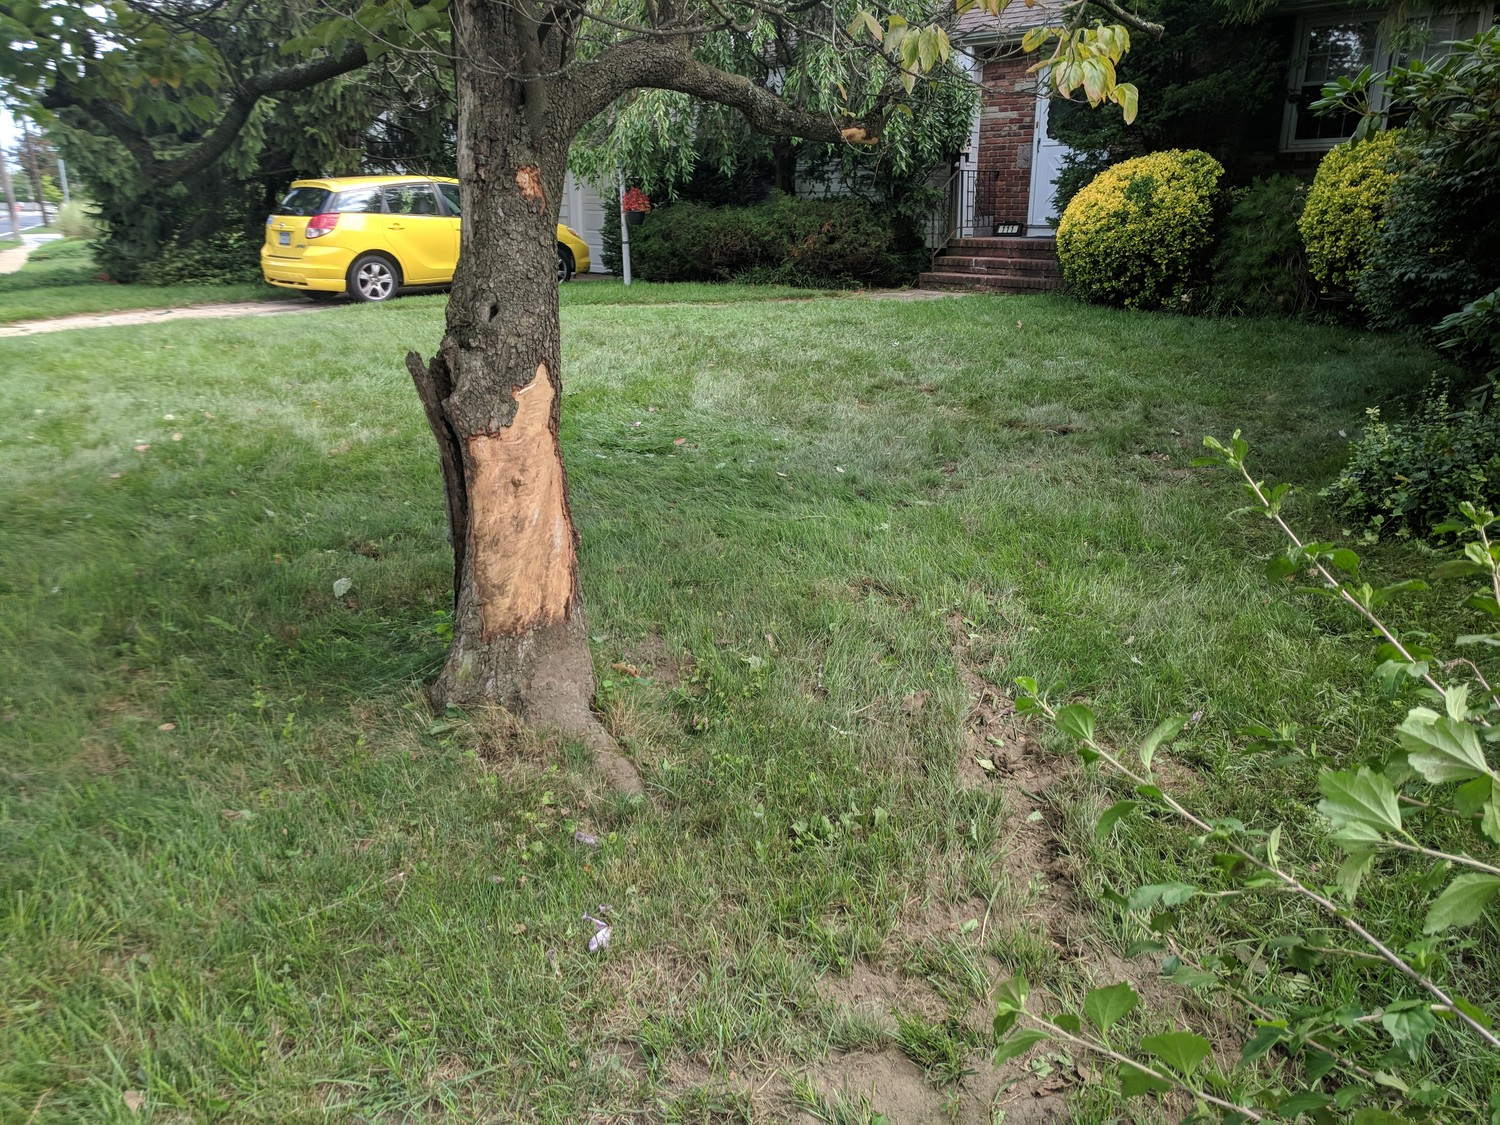 The tree the motorcyclist struck.